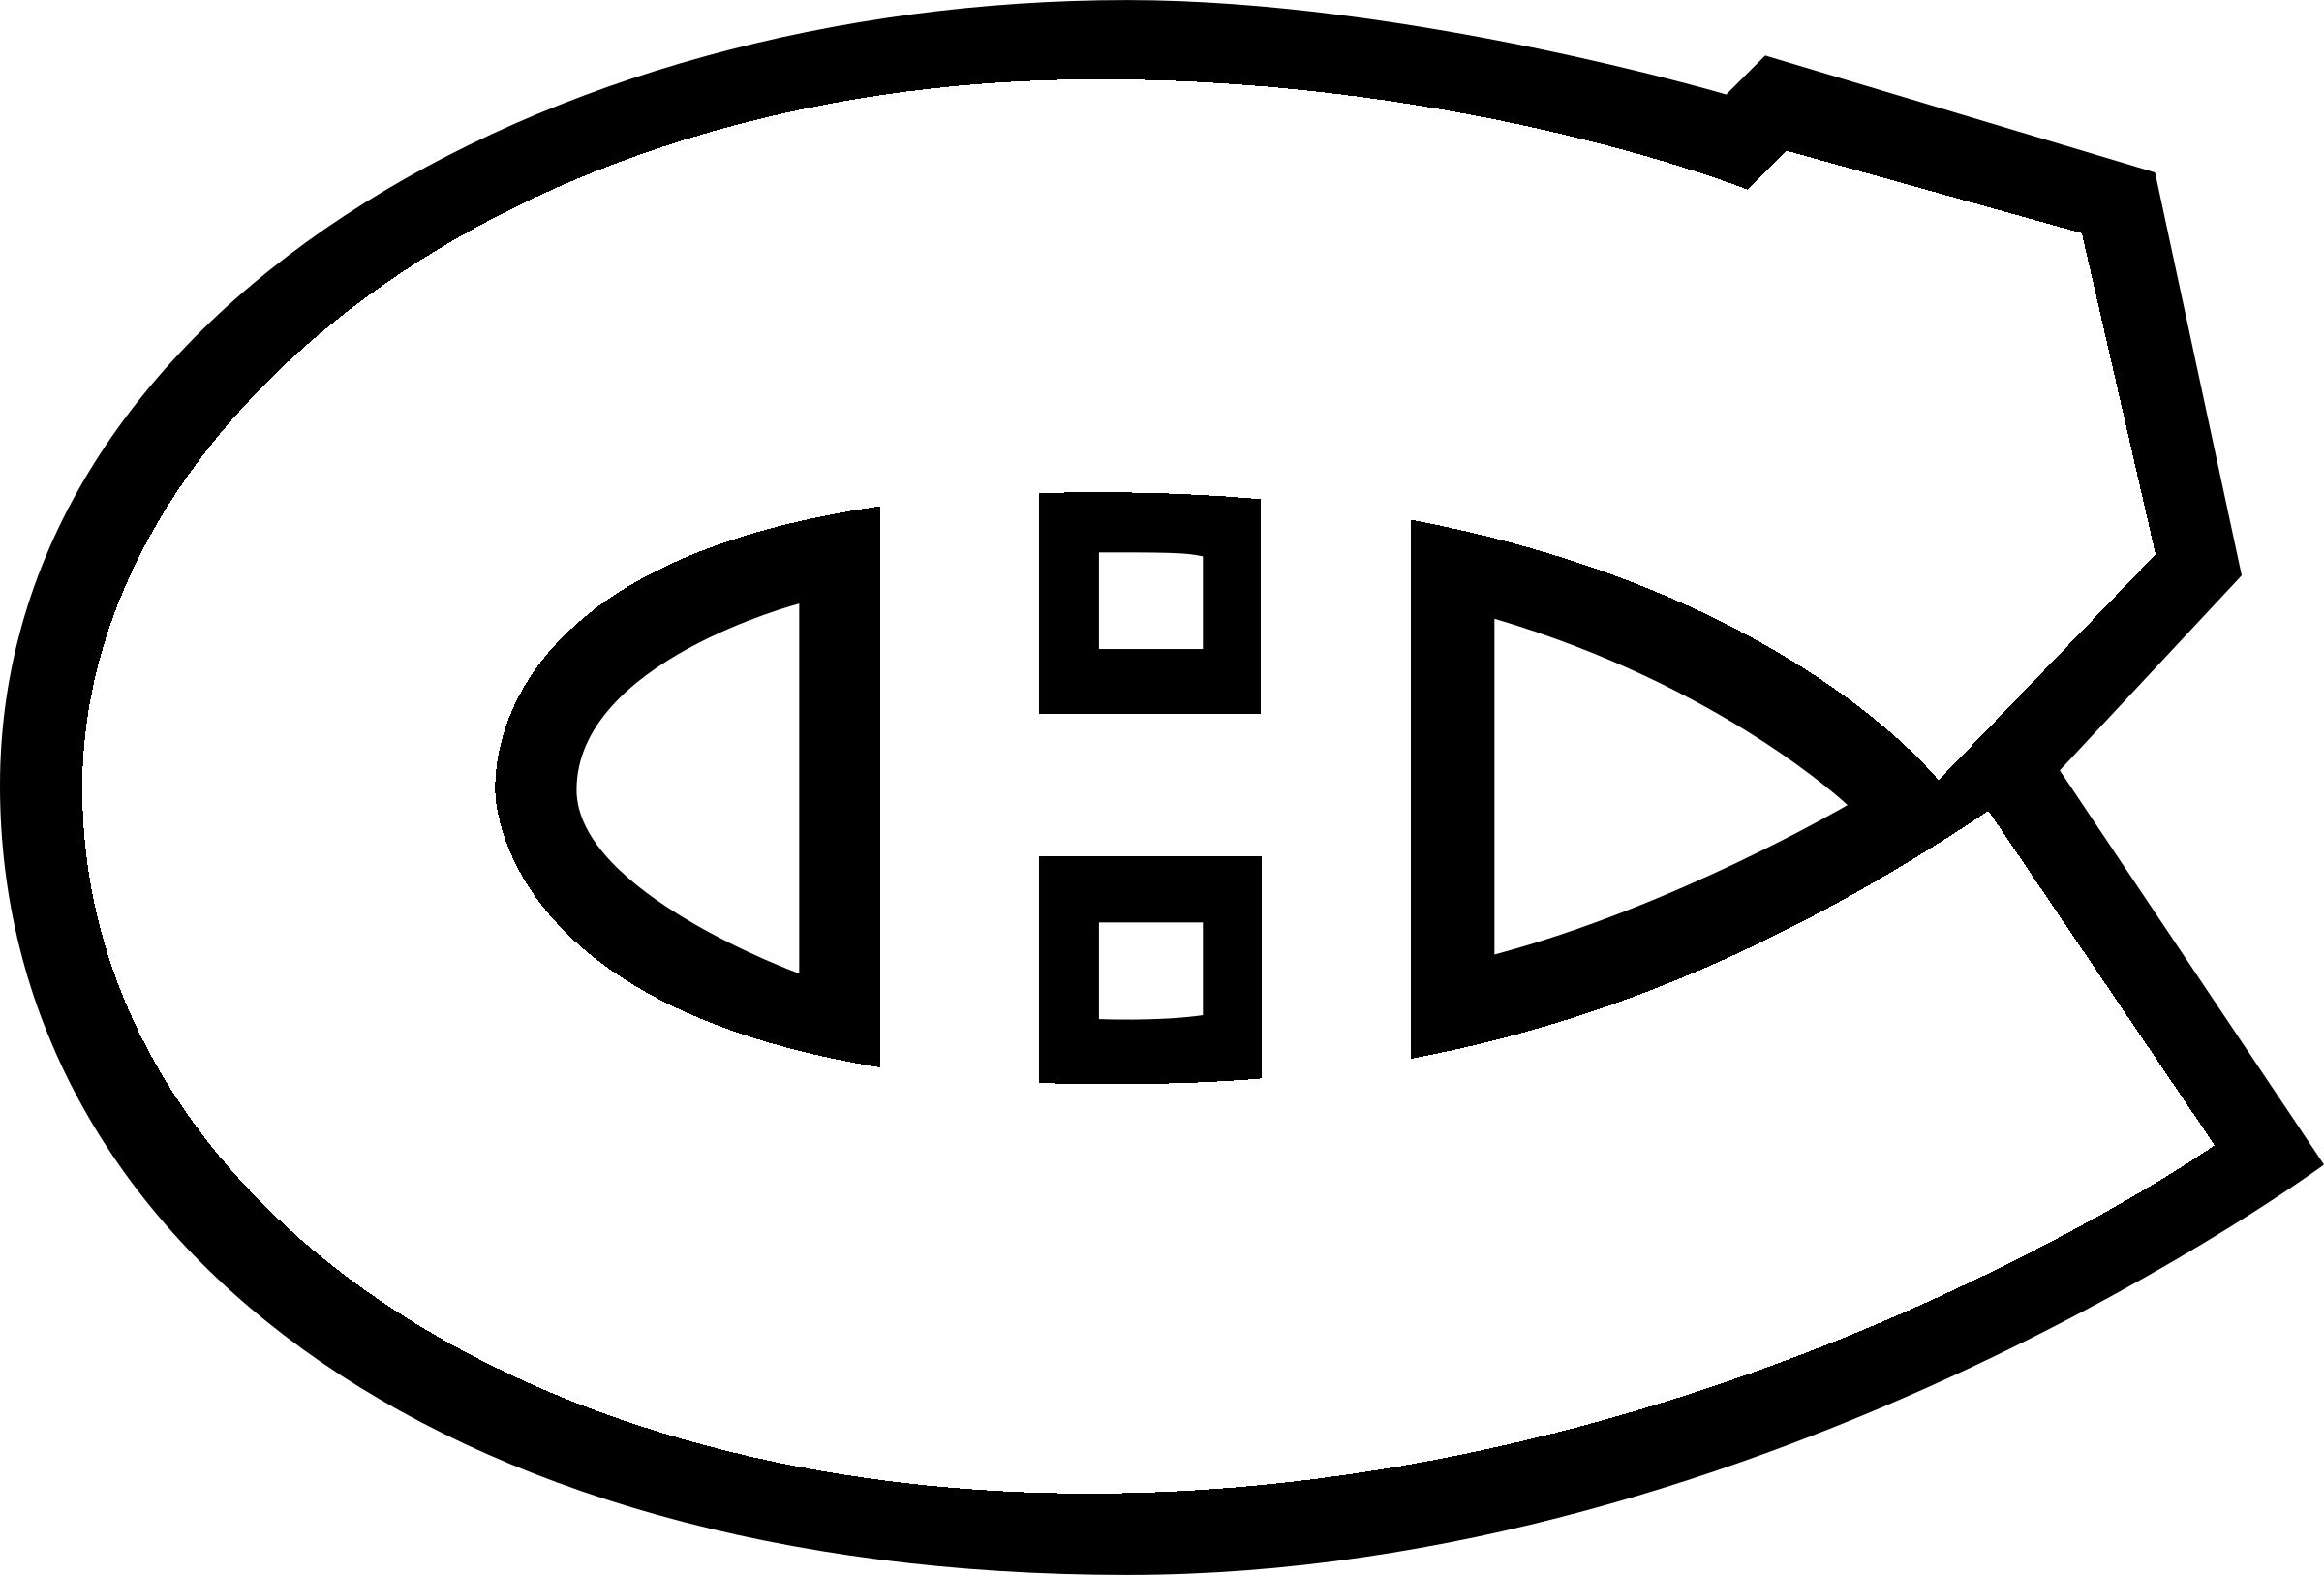 Montreal Canadiens Logo PNG Transparent & SVG Vector.